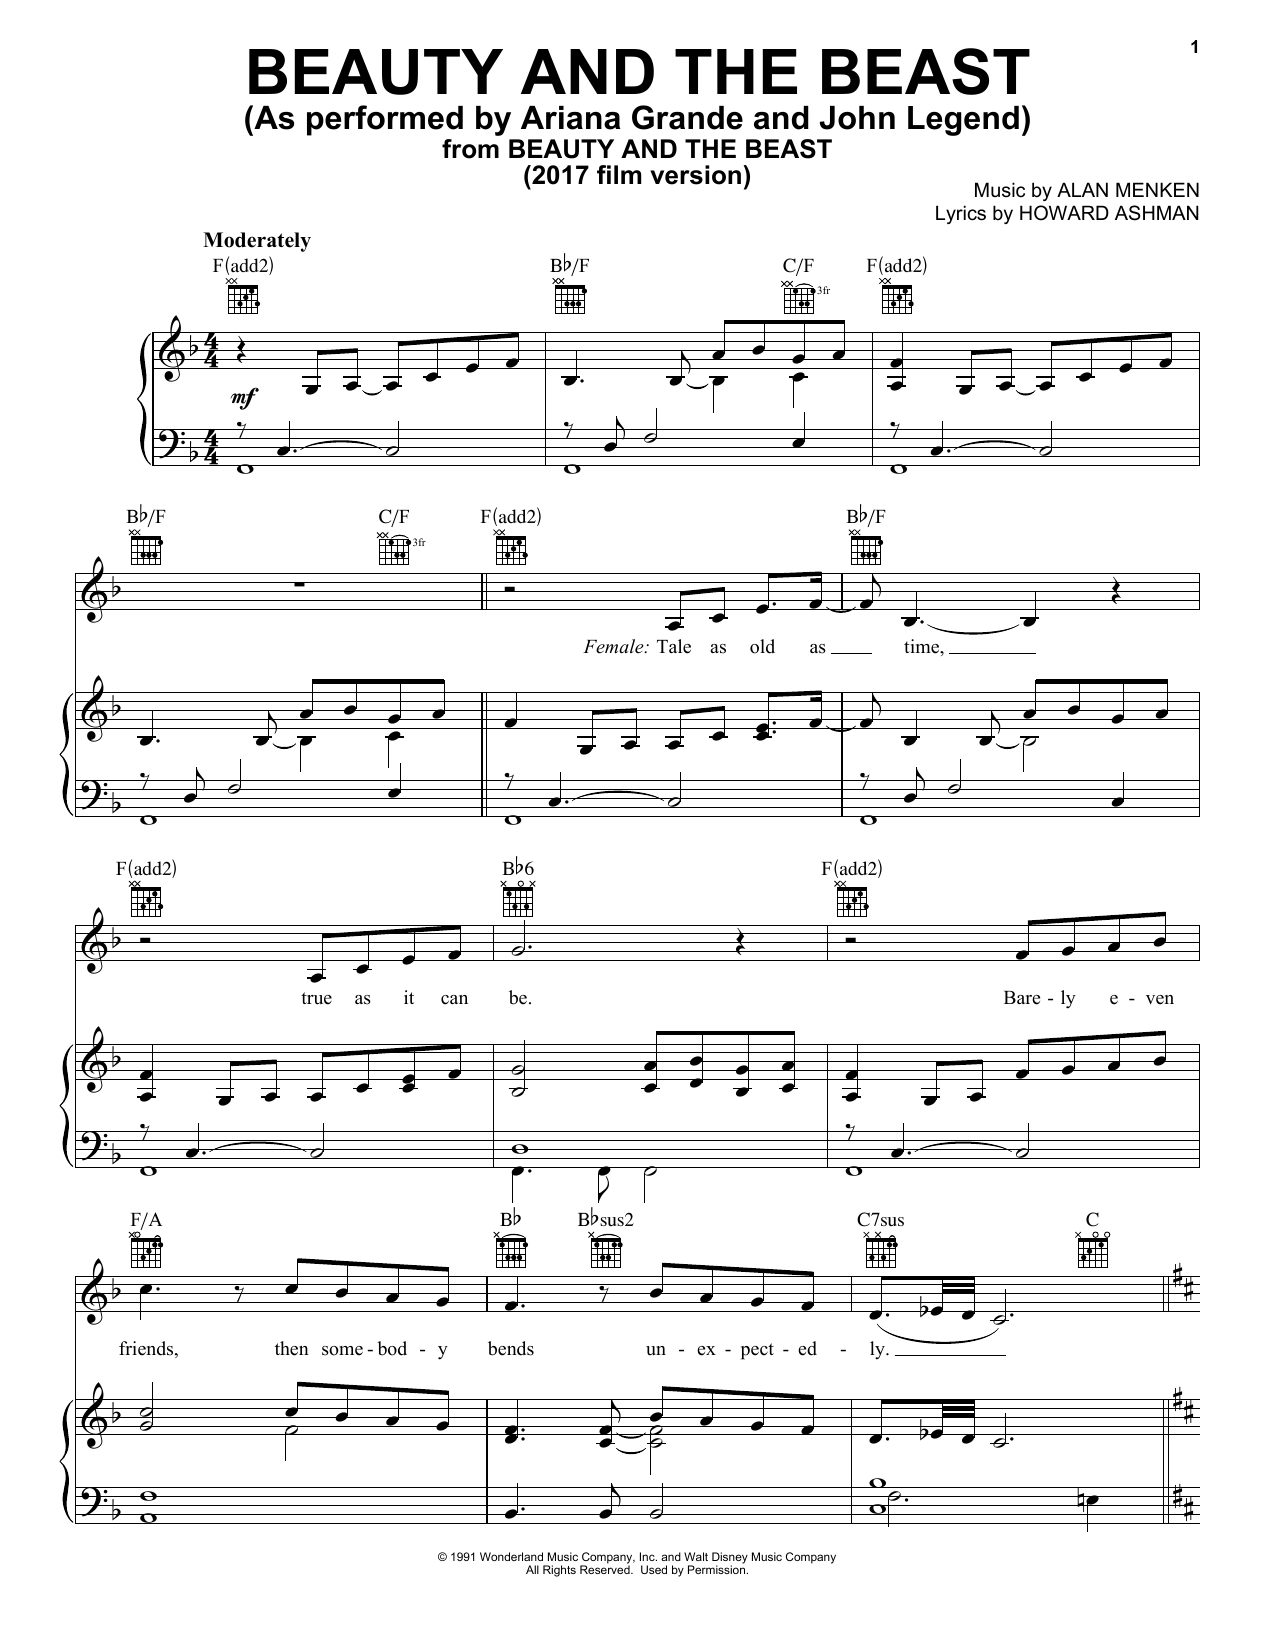 Beauty And The Beast Song Download : beauty, beast, download, Beauty, Beast, Sheet, Music, Download, Printable, Notes, Disney, Piano, Music,